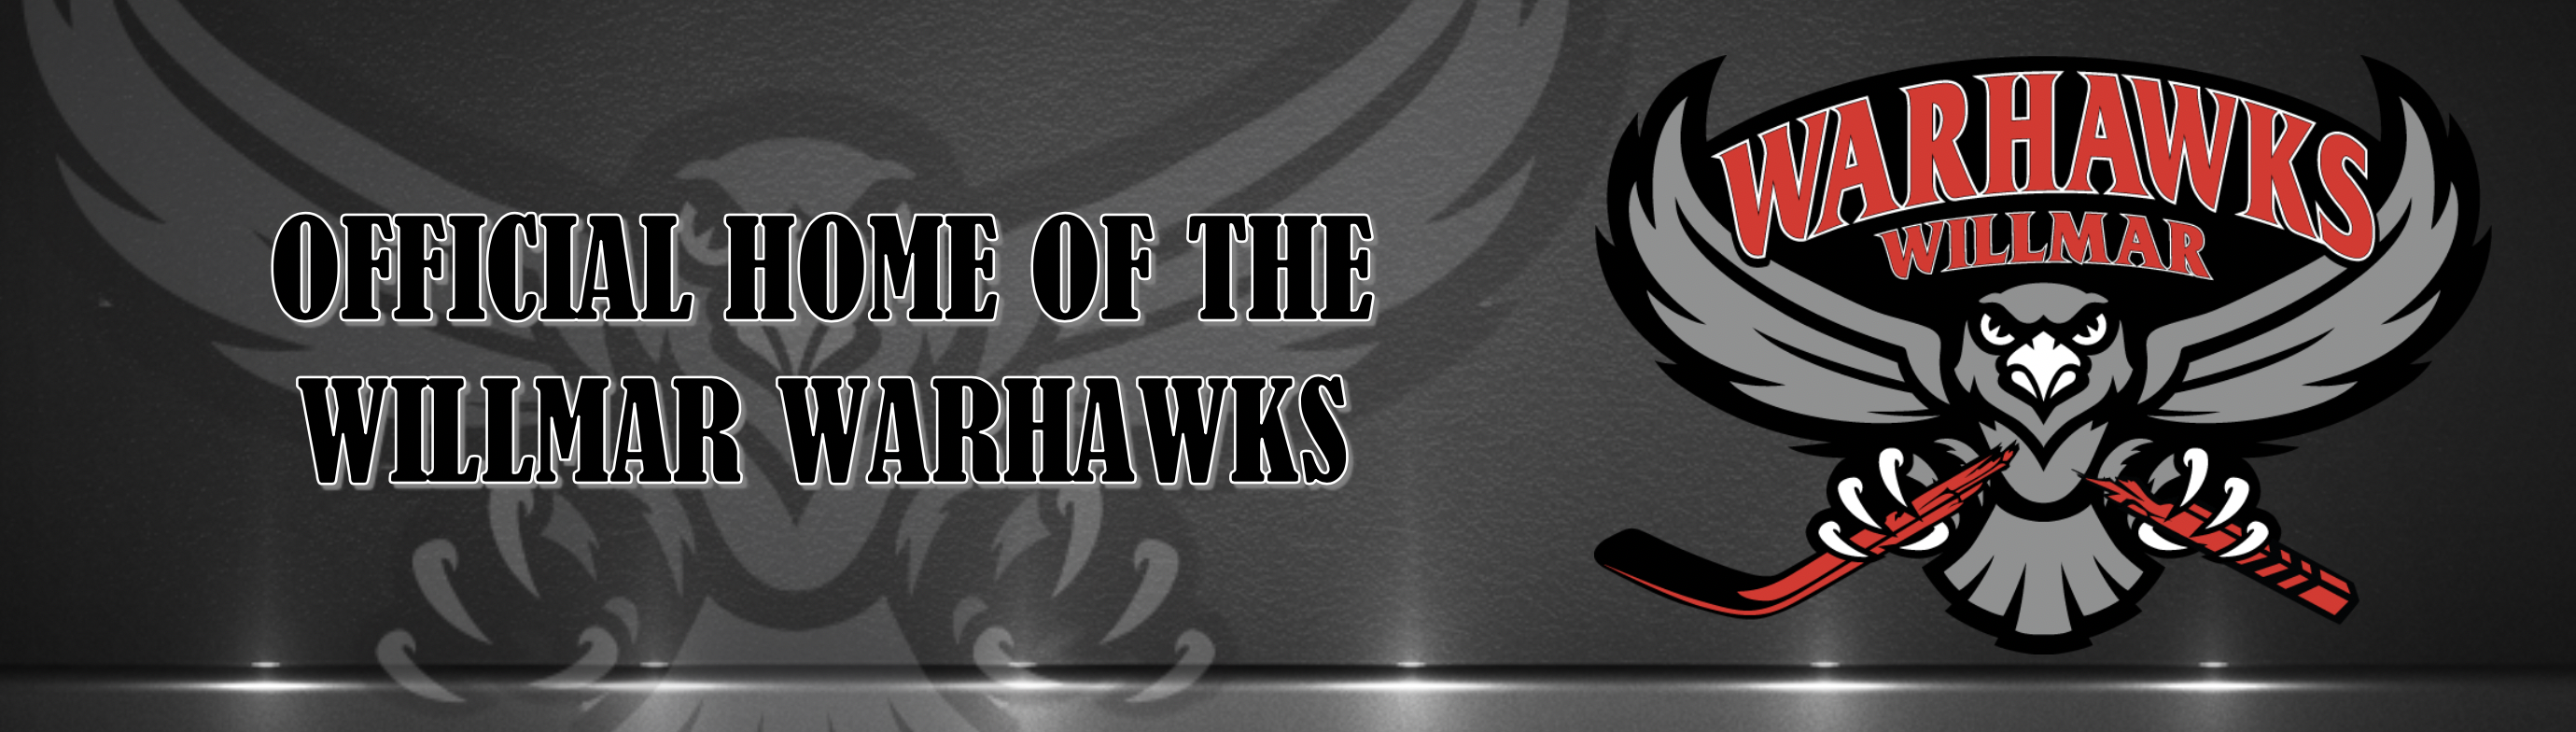 Willmar Warhawks Ticket Portal